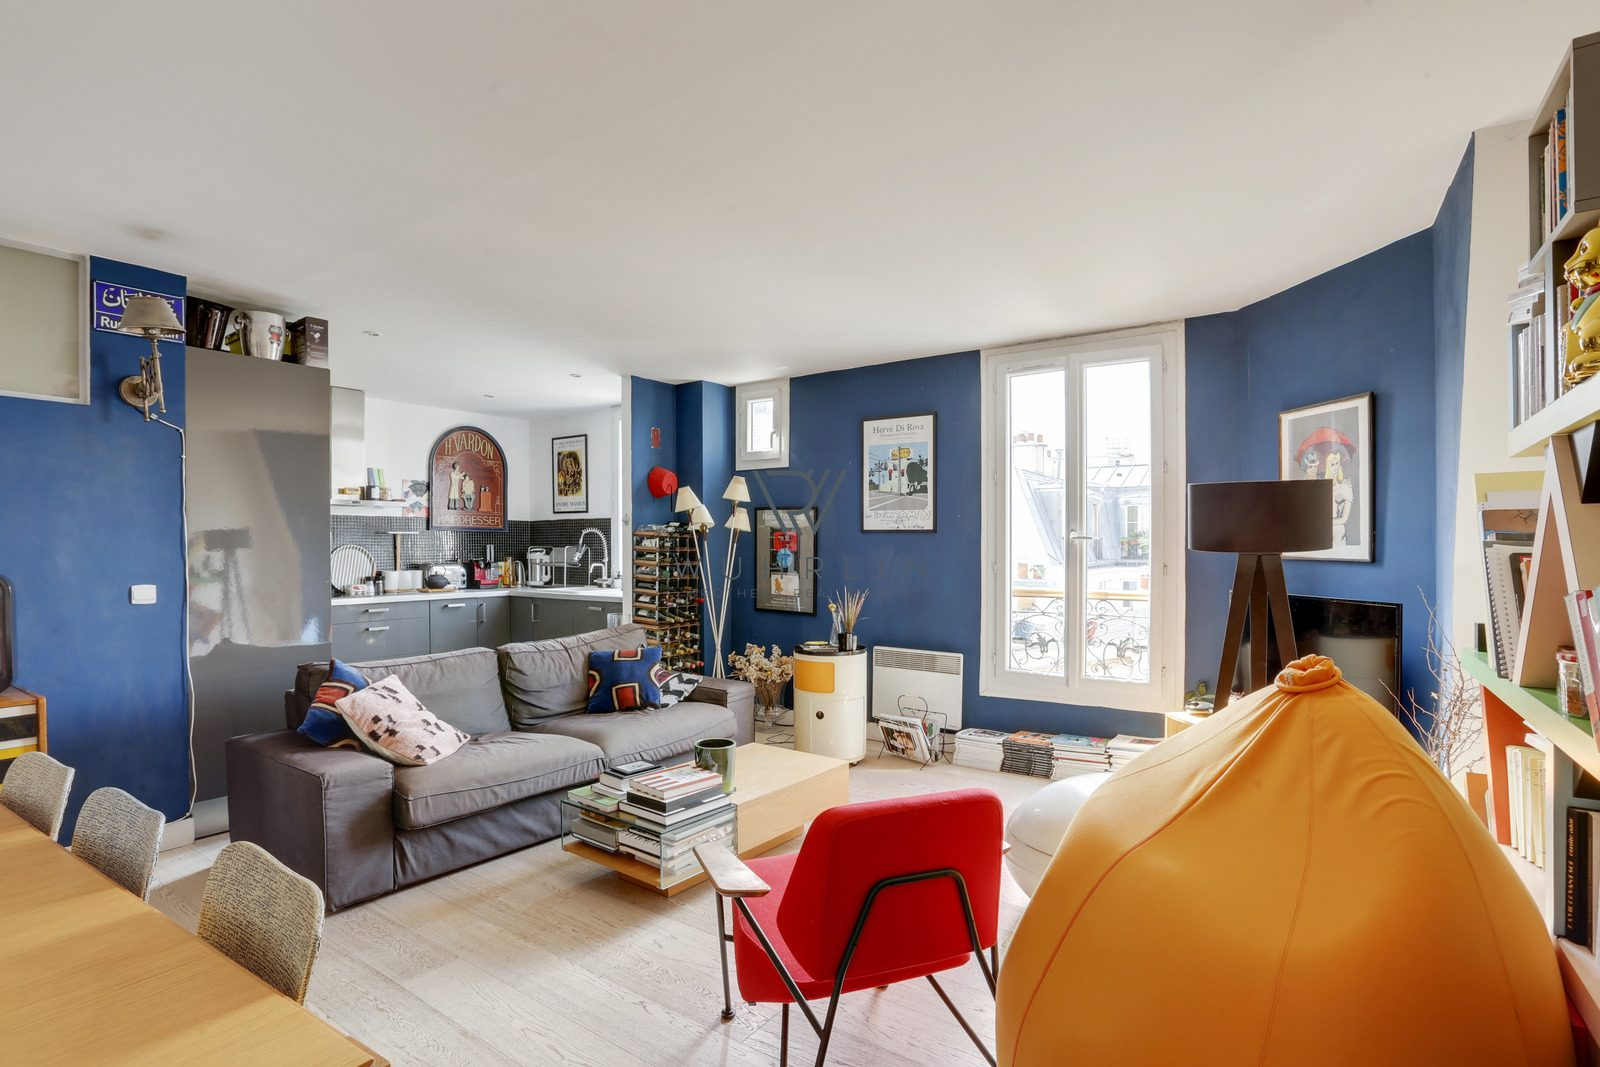 54m2 rue Louvel-Tessier Paris 10